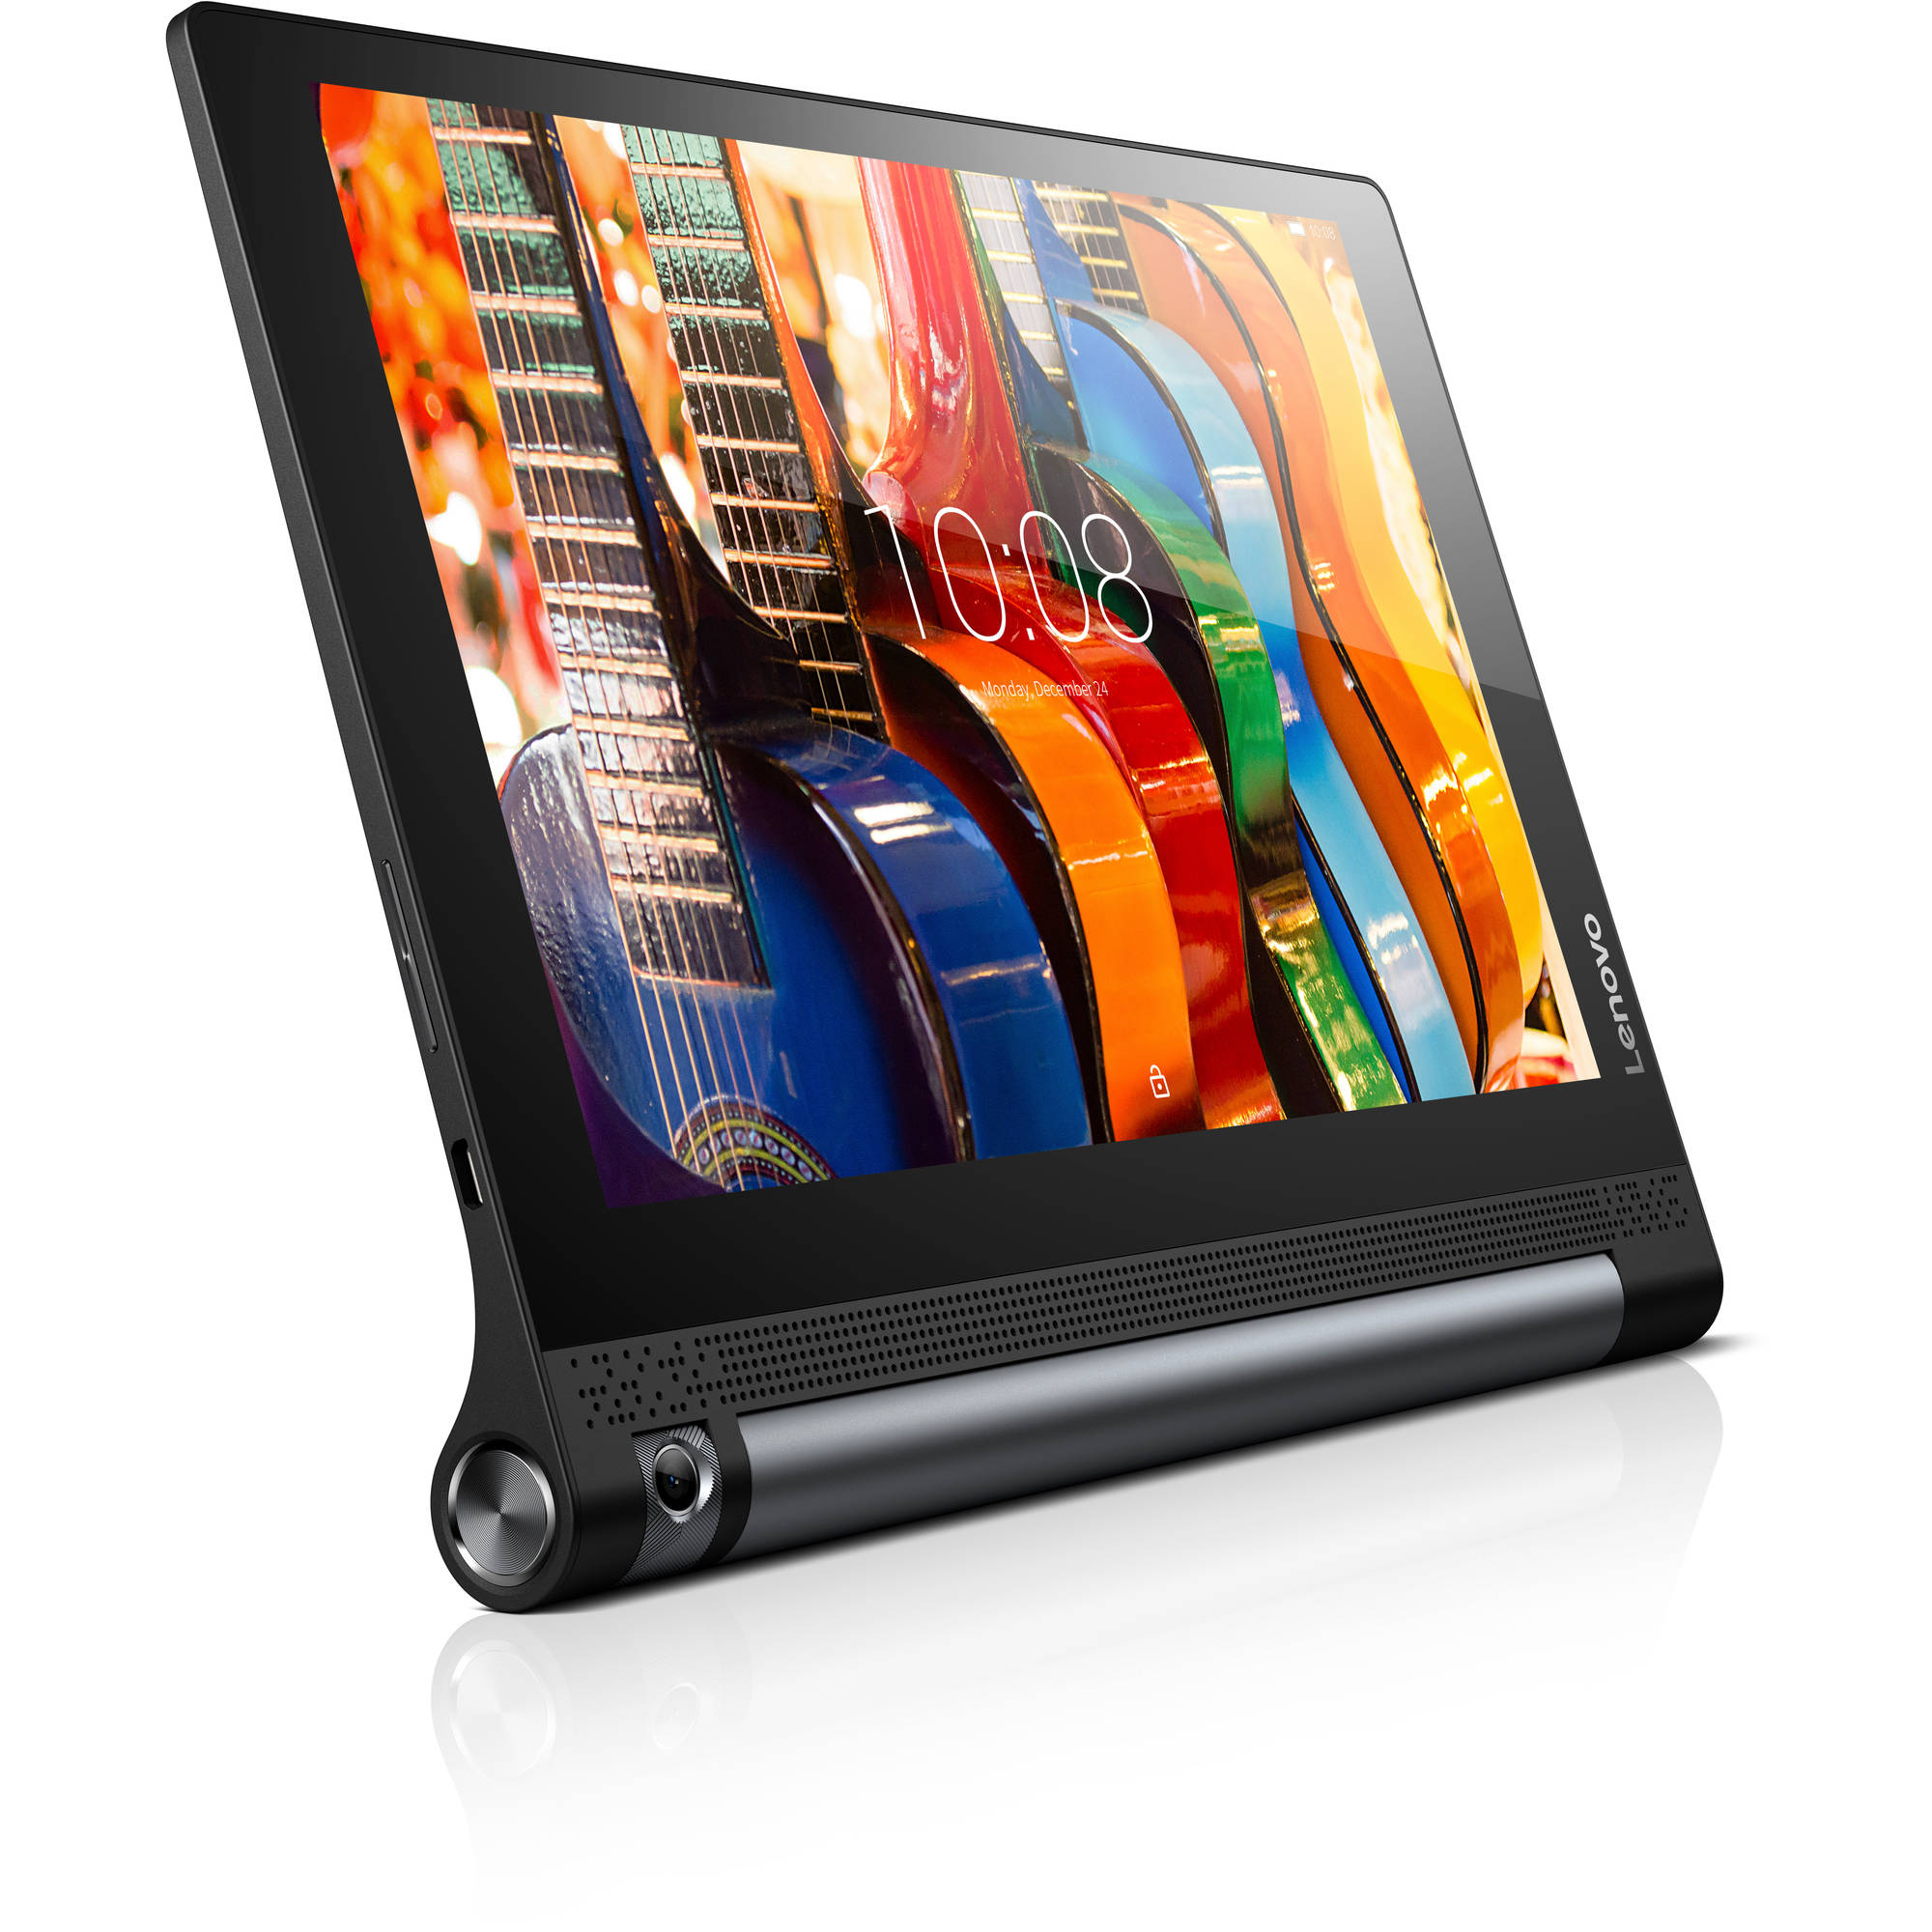 """Lenovo YOGA Tab 3 with WiFi 10.1"""" Touchscreen Tablet PC Featuring Android 5.1 (Lollipop) Operating System"""